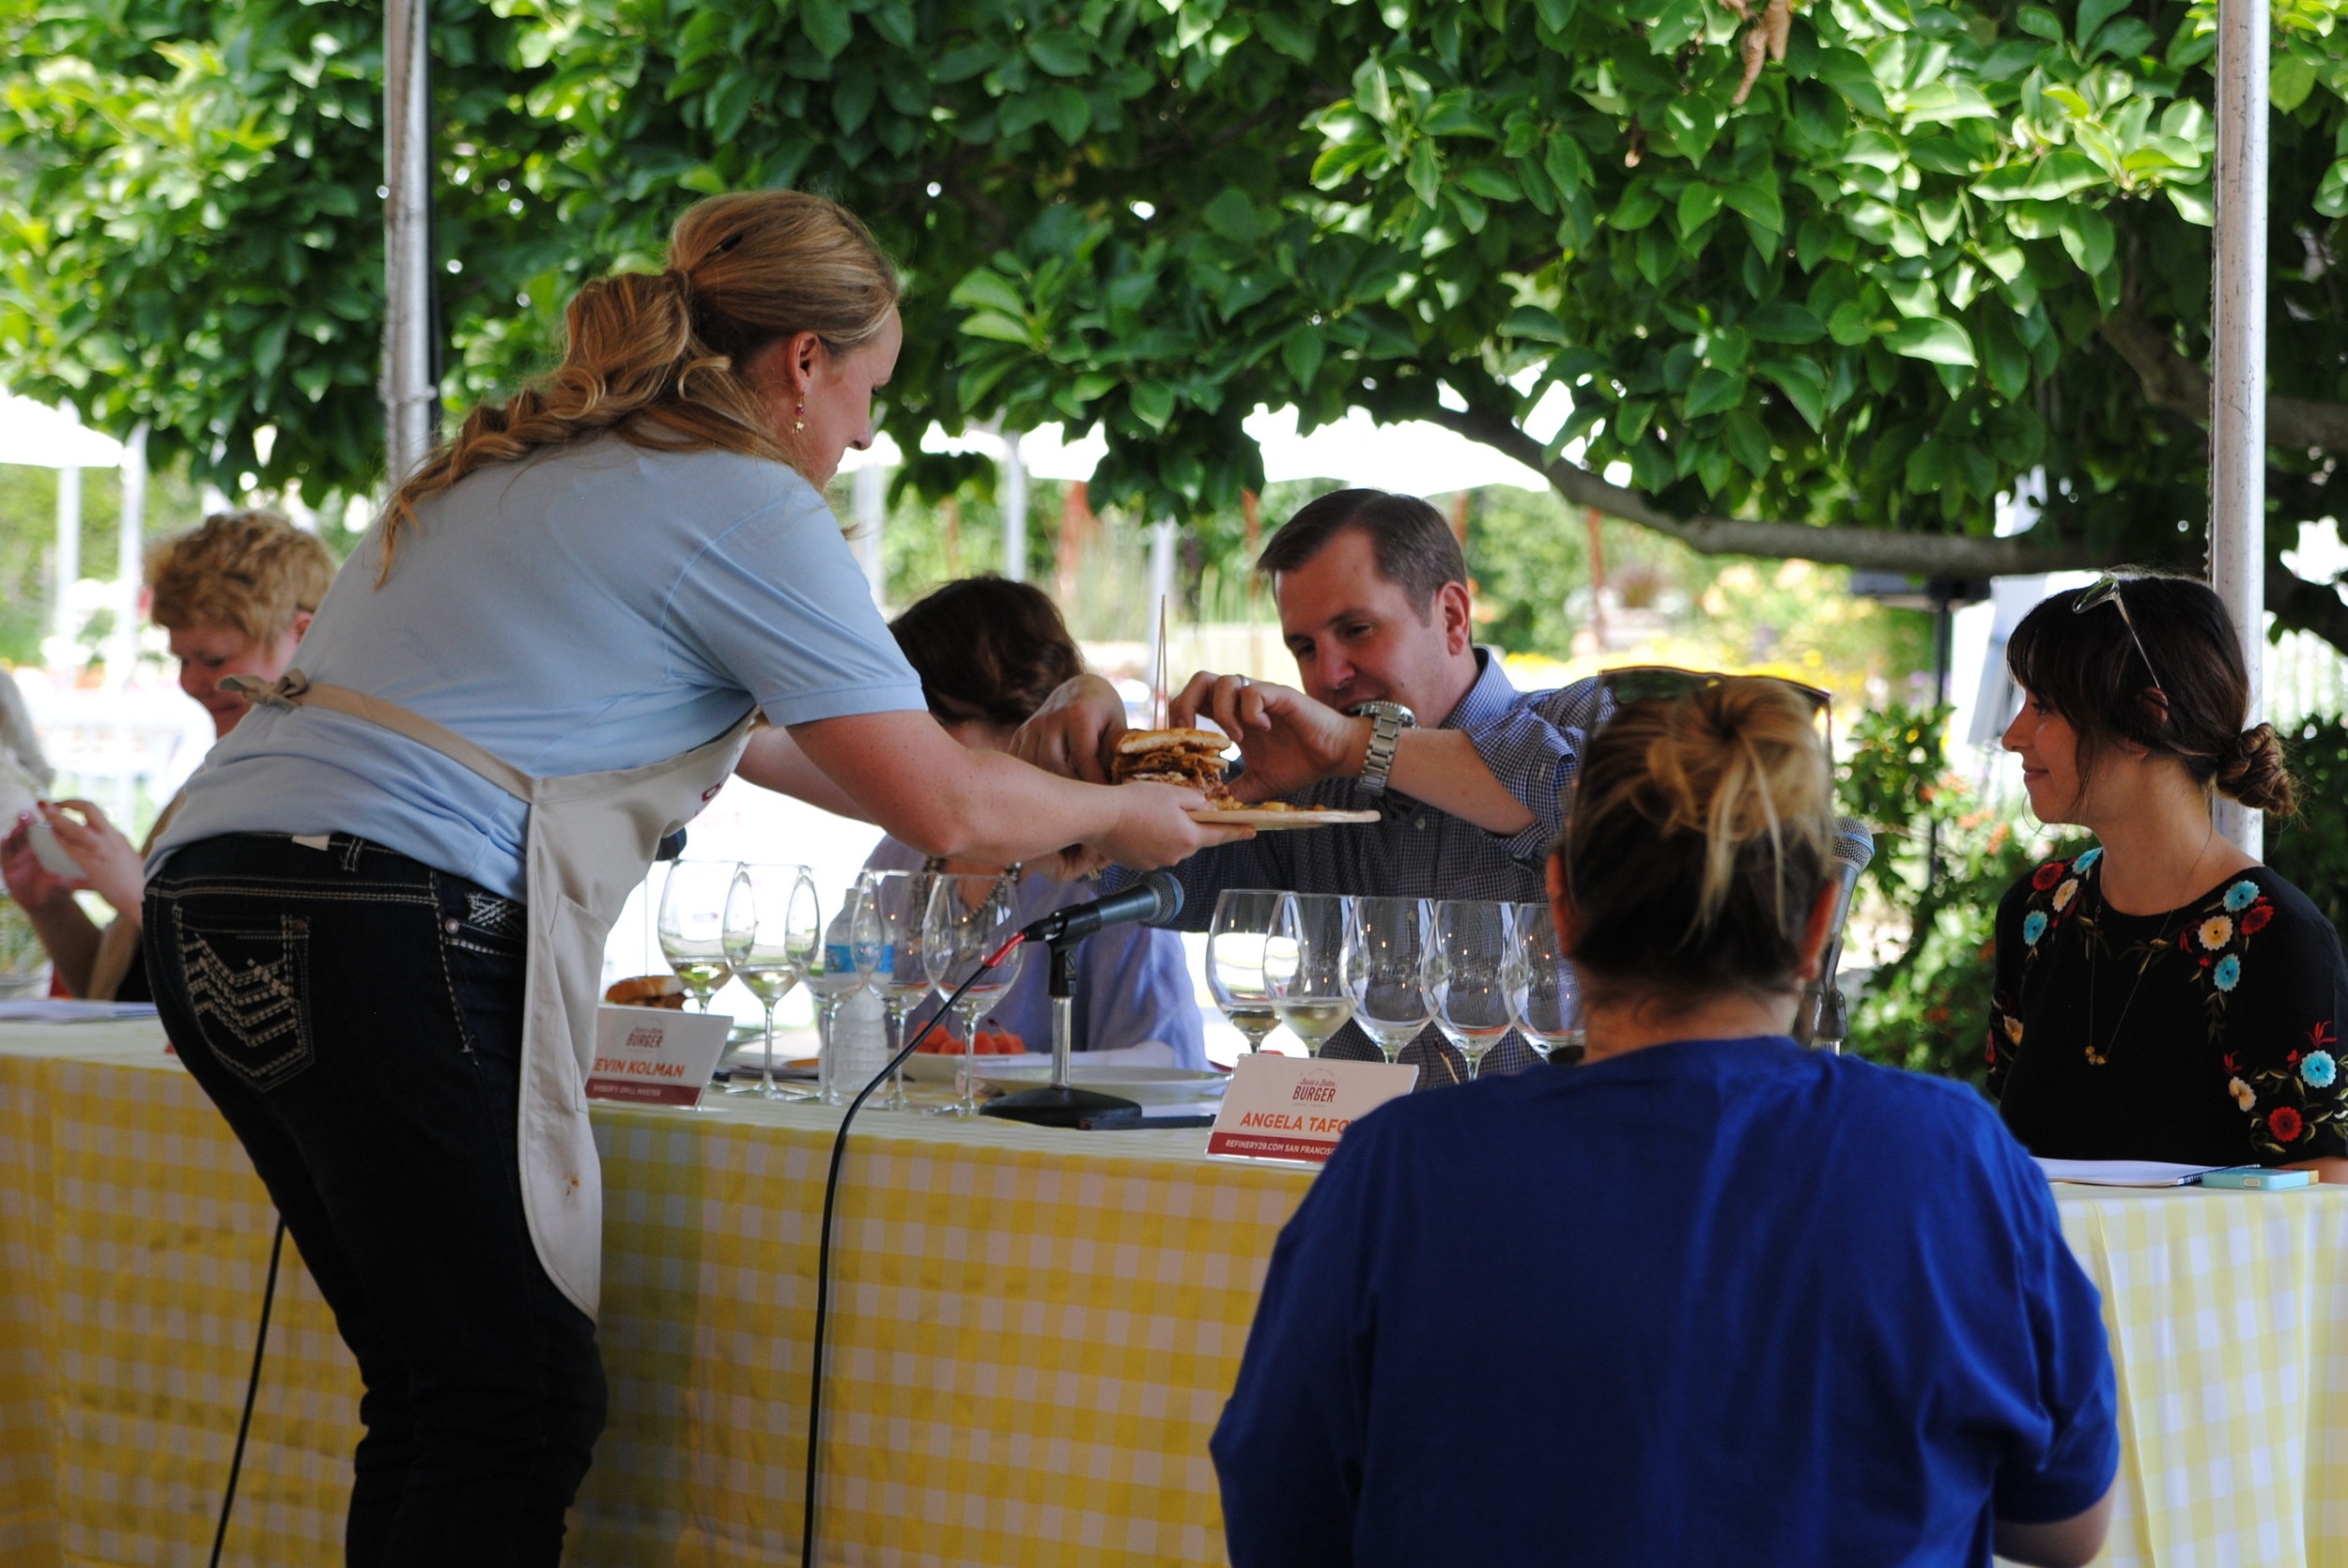 Cristen Clark shares her winning pork burger with Kevin Kolman during the Sutter Home Build a Burger Contest.